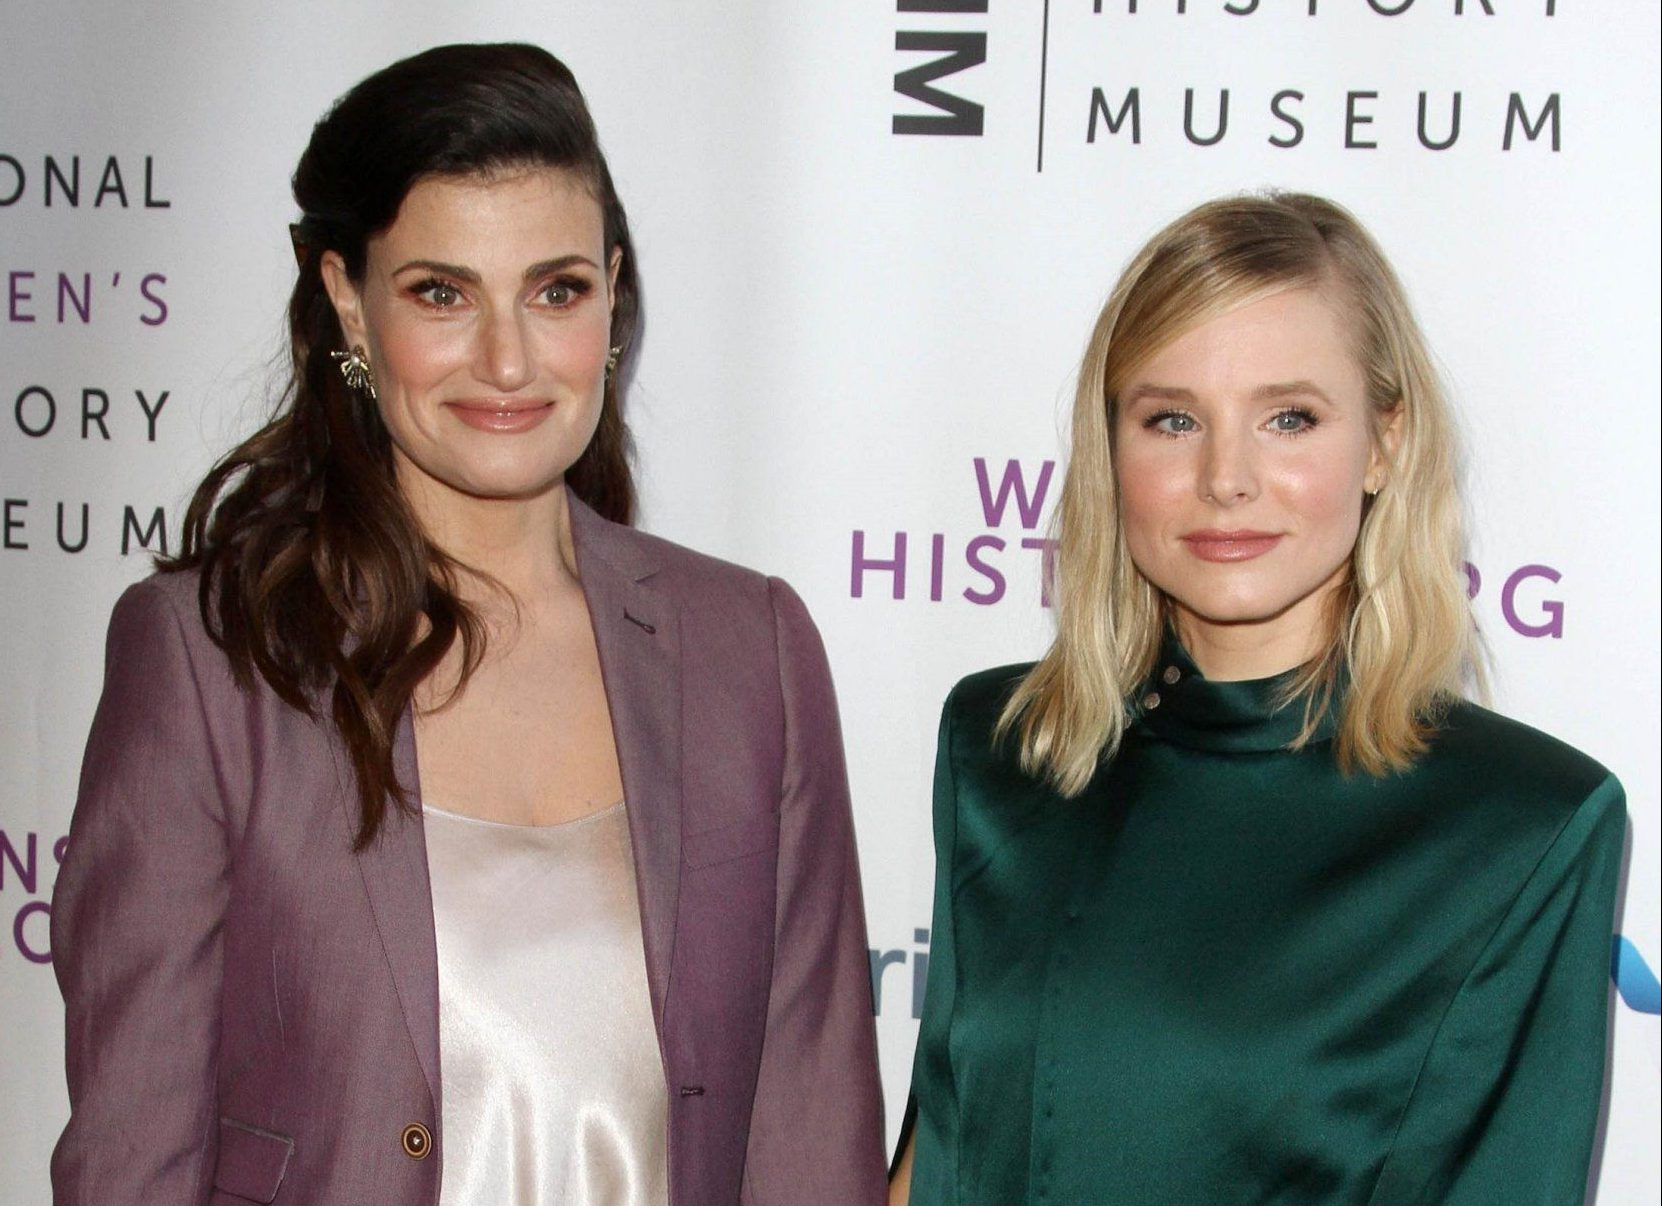 Beverly Hills, CA - Women Making History Awards 2018 held at The Beverly Hilton Hotel in Beverly Hills, California on 9/15/18. Pictured: Idina Menzel, Kristen Bell BACKGRID USA 15 SEPTEMBER 2018 BYLINE MUST READ: Juan Rico / BACKGRID USA: +1 310 798 9111 / usasales@backgrid.com UK: +44 208 344 2007 / uksales@backgrid.com *UK Clients - Pictures Containing Children Please Pixelate Face Prior To Publication*